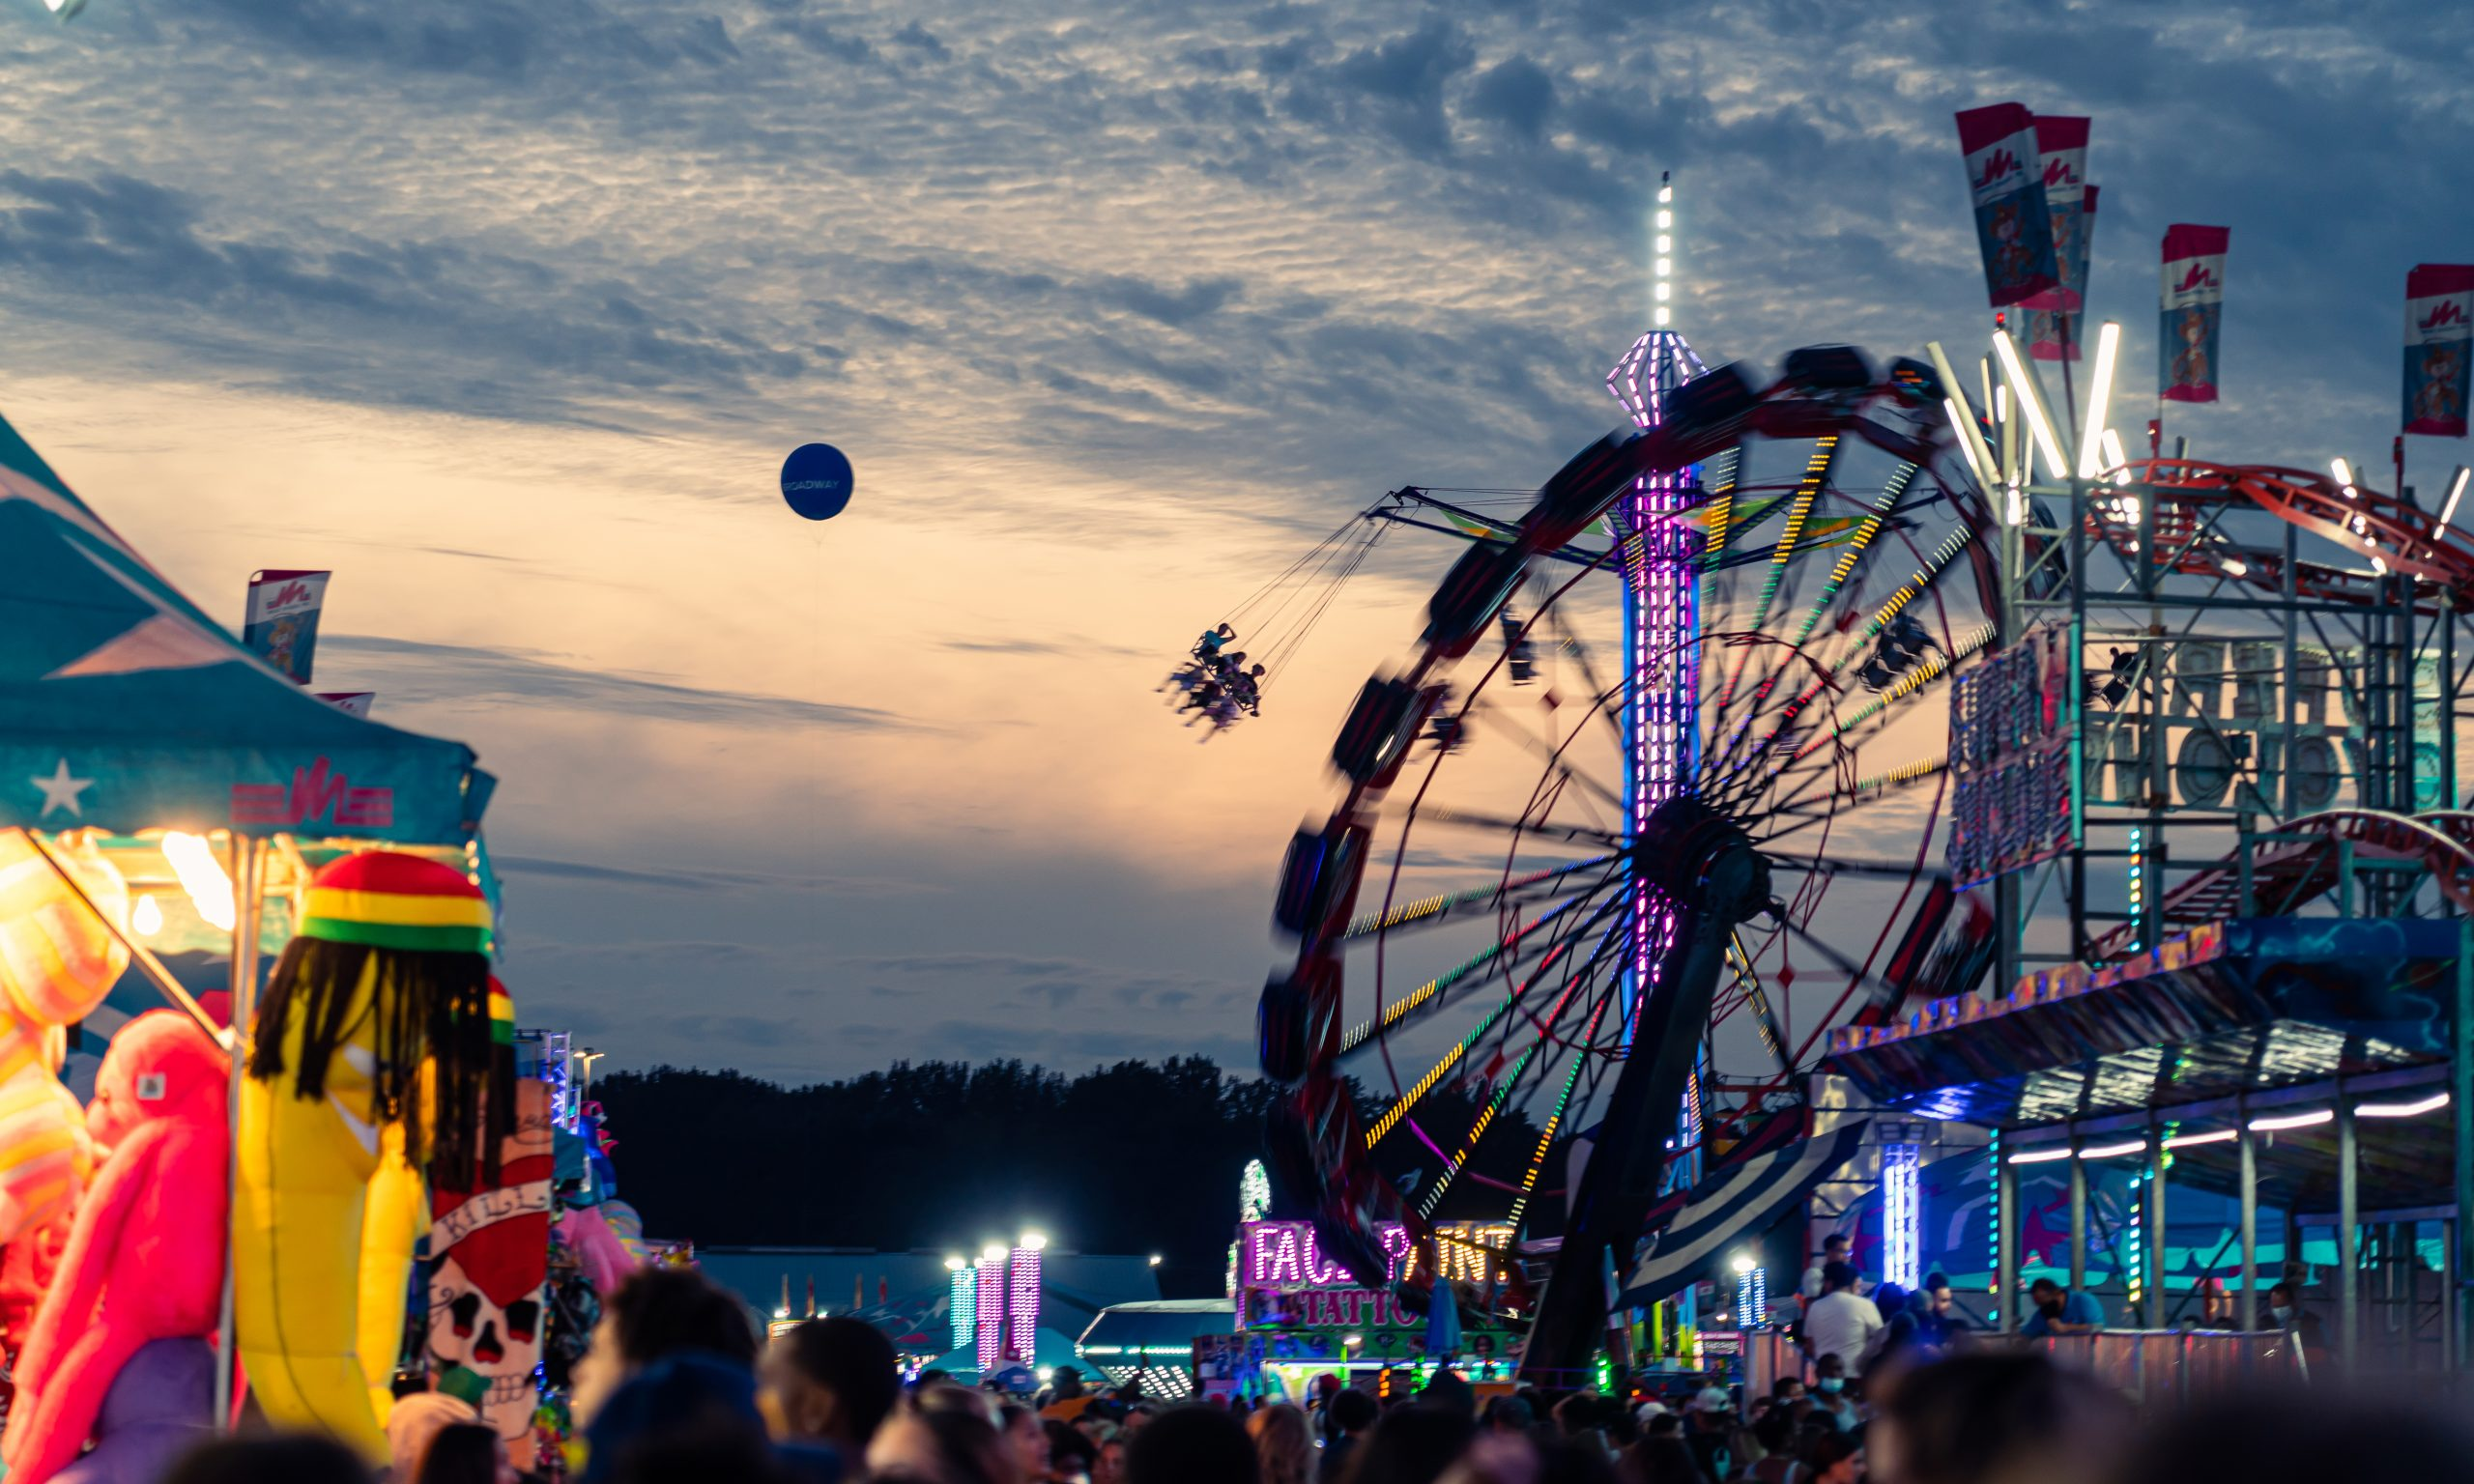 The New York State Fair featured more than 40 amusement rides and plenty of carnival-style games.